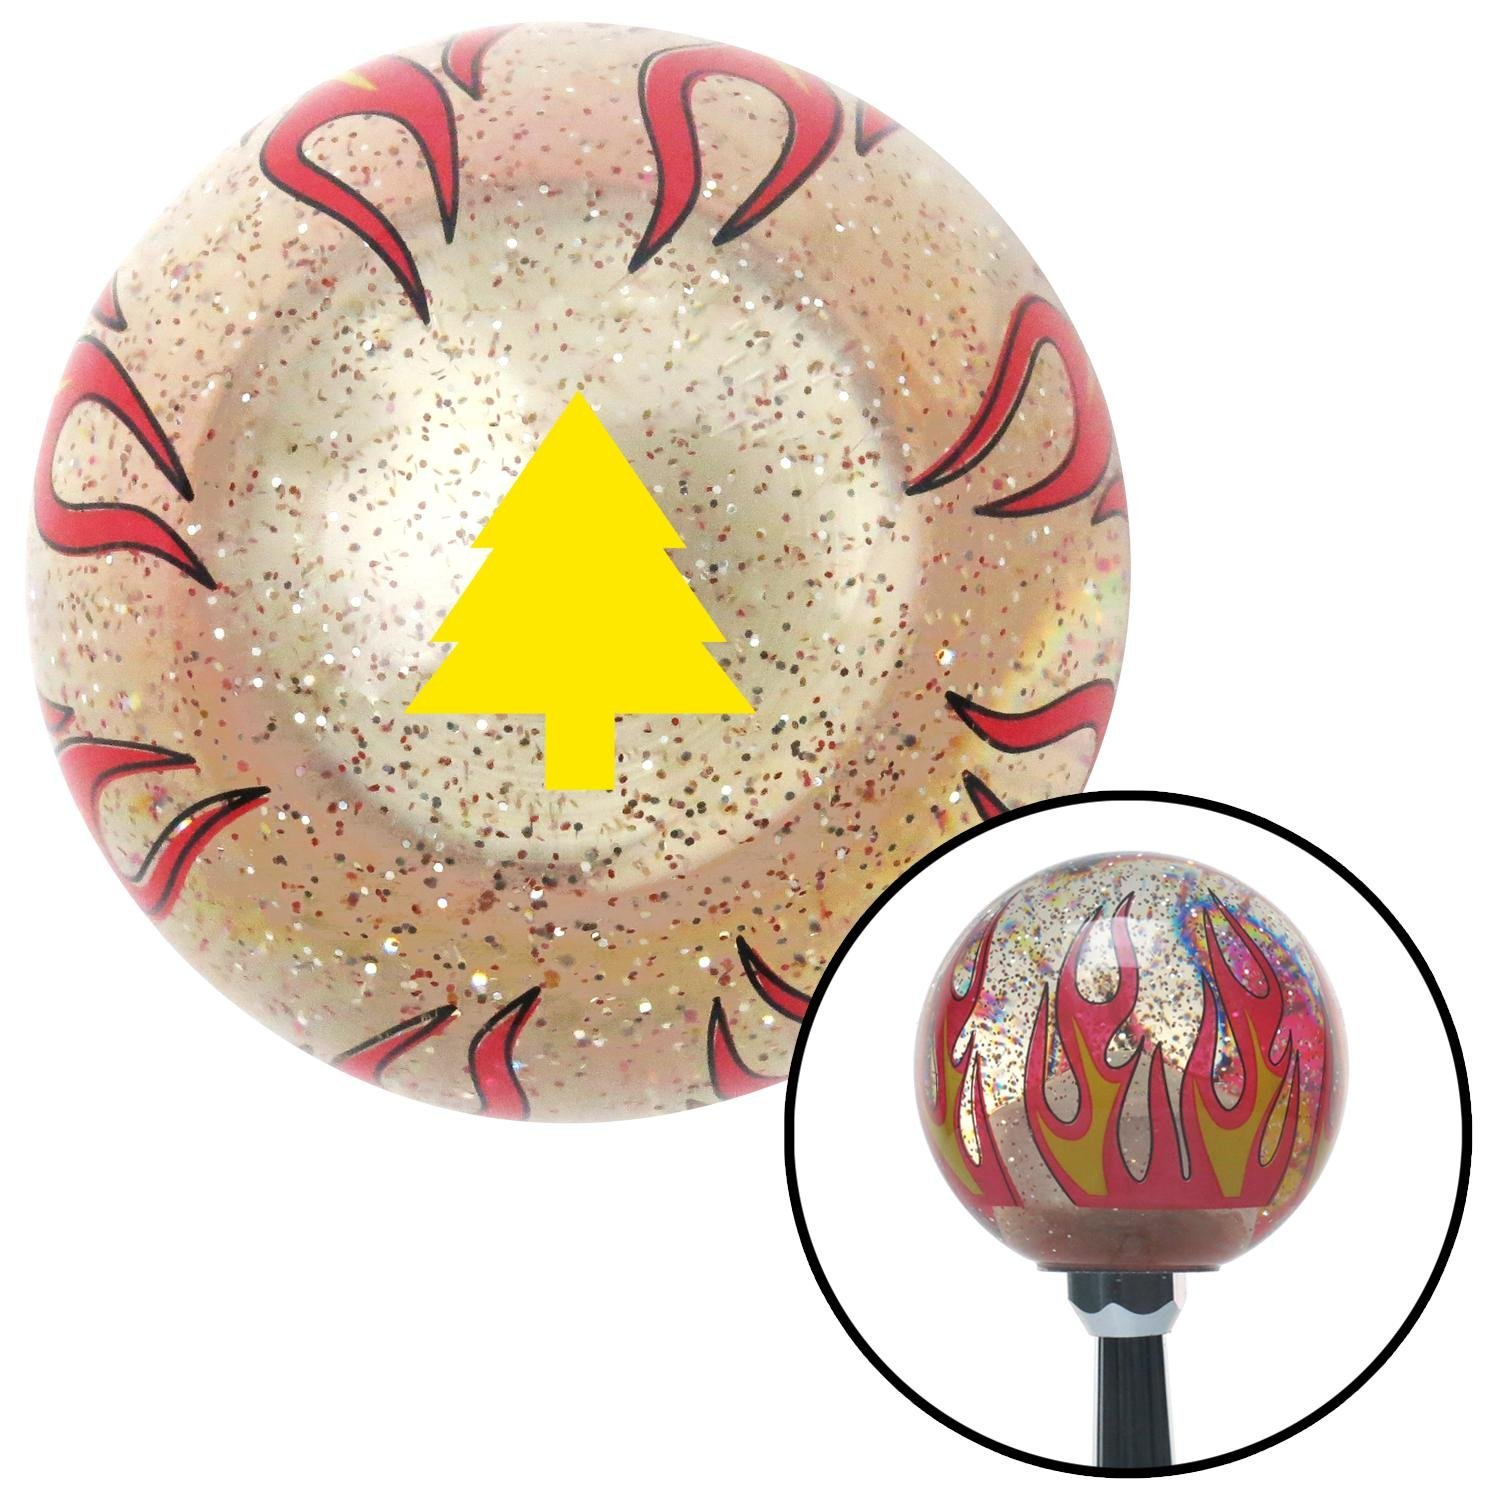 American Shifter 295556 Shift Knob Yellow Pine Tree Clear Flame Metal Flake with M16 x 1.5 Insert